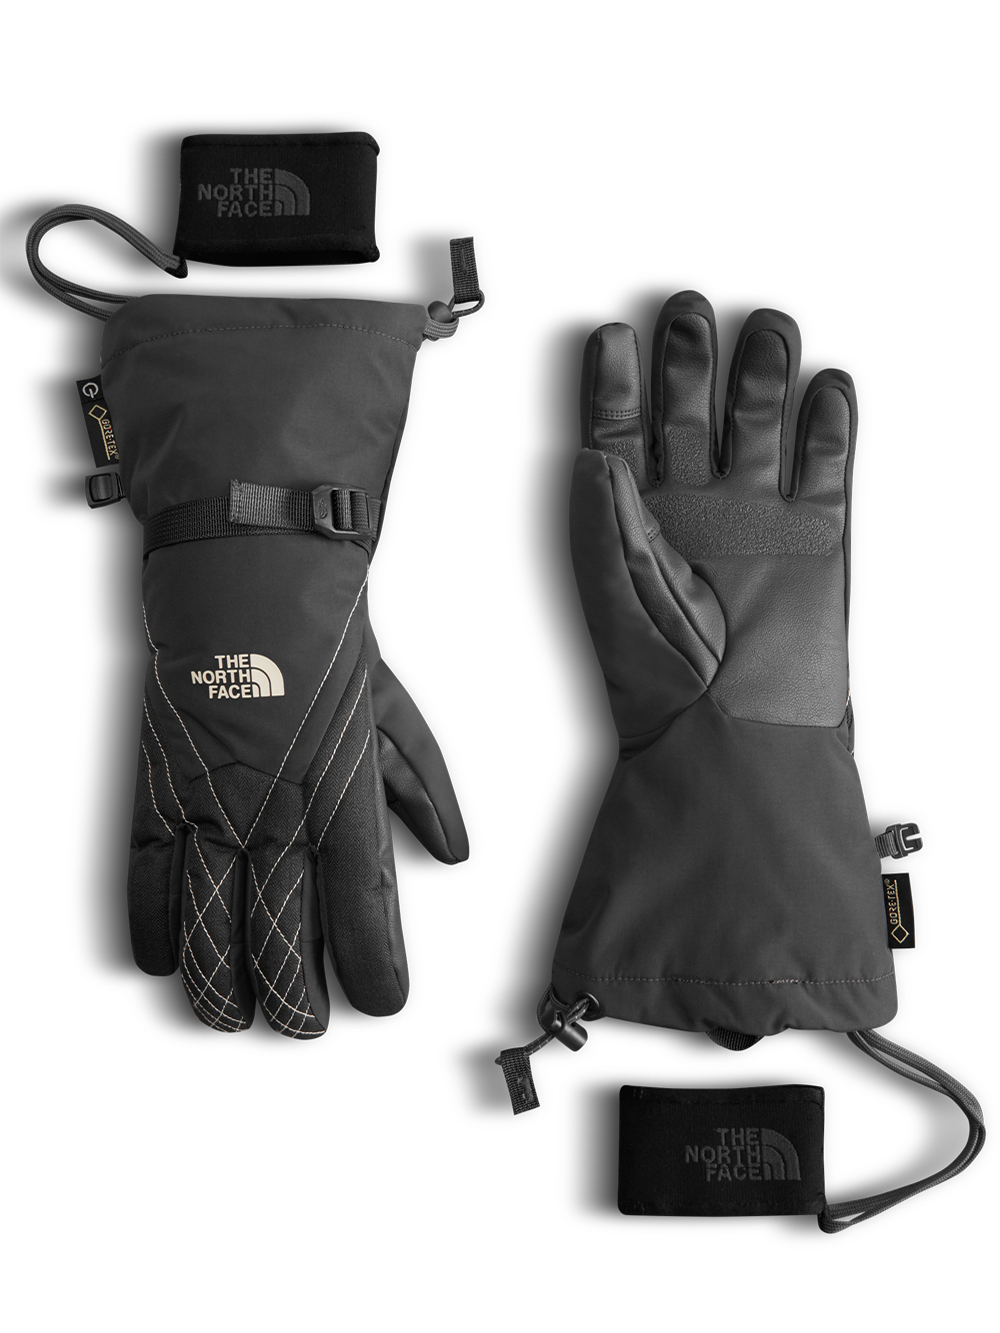 4b66867a3 Women's Montana Gore-Tex Gloves by The North Face in Asphalt gray ...